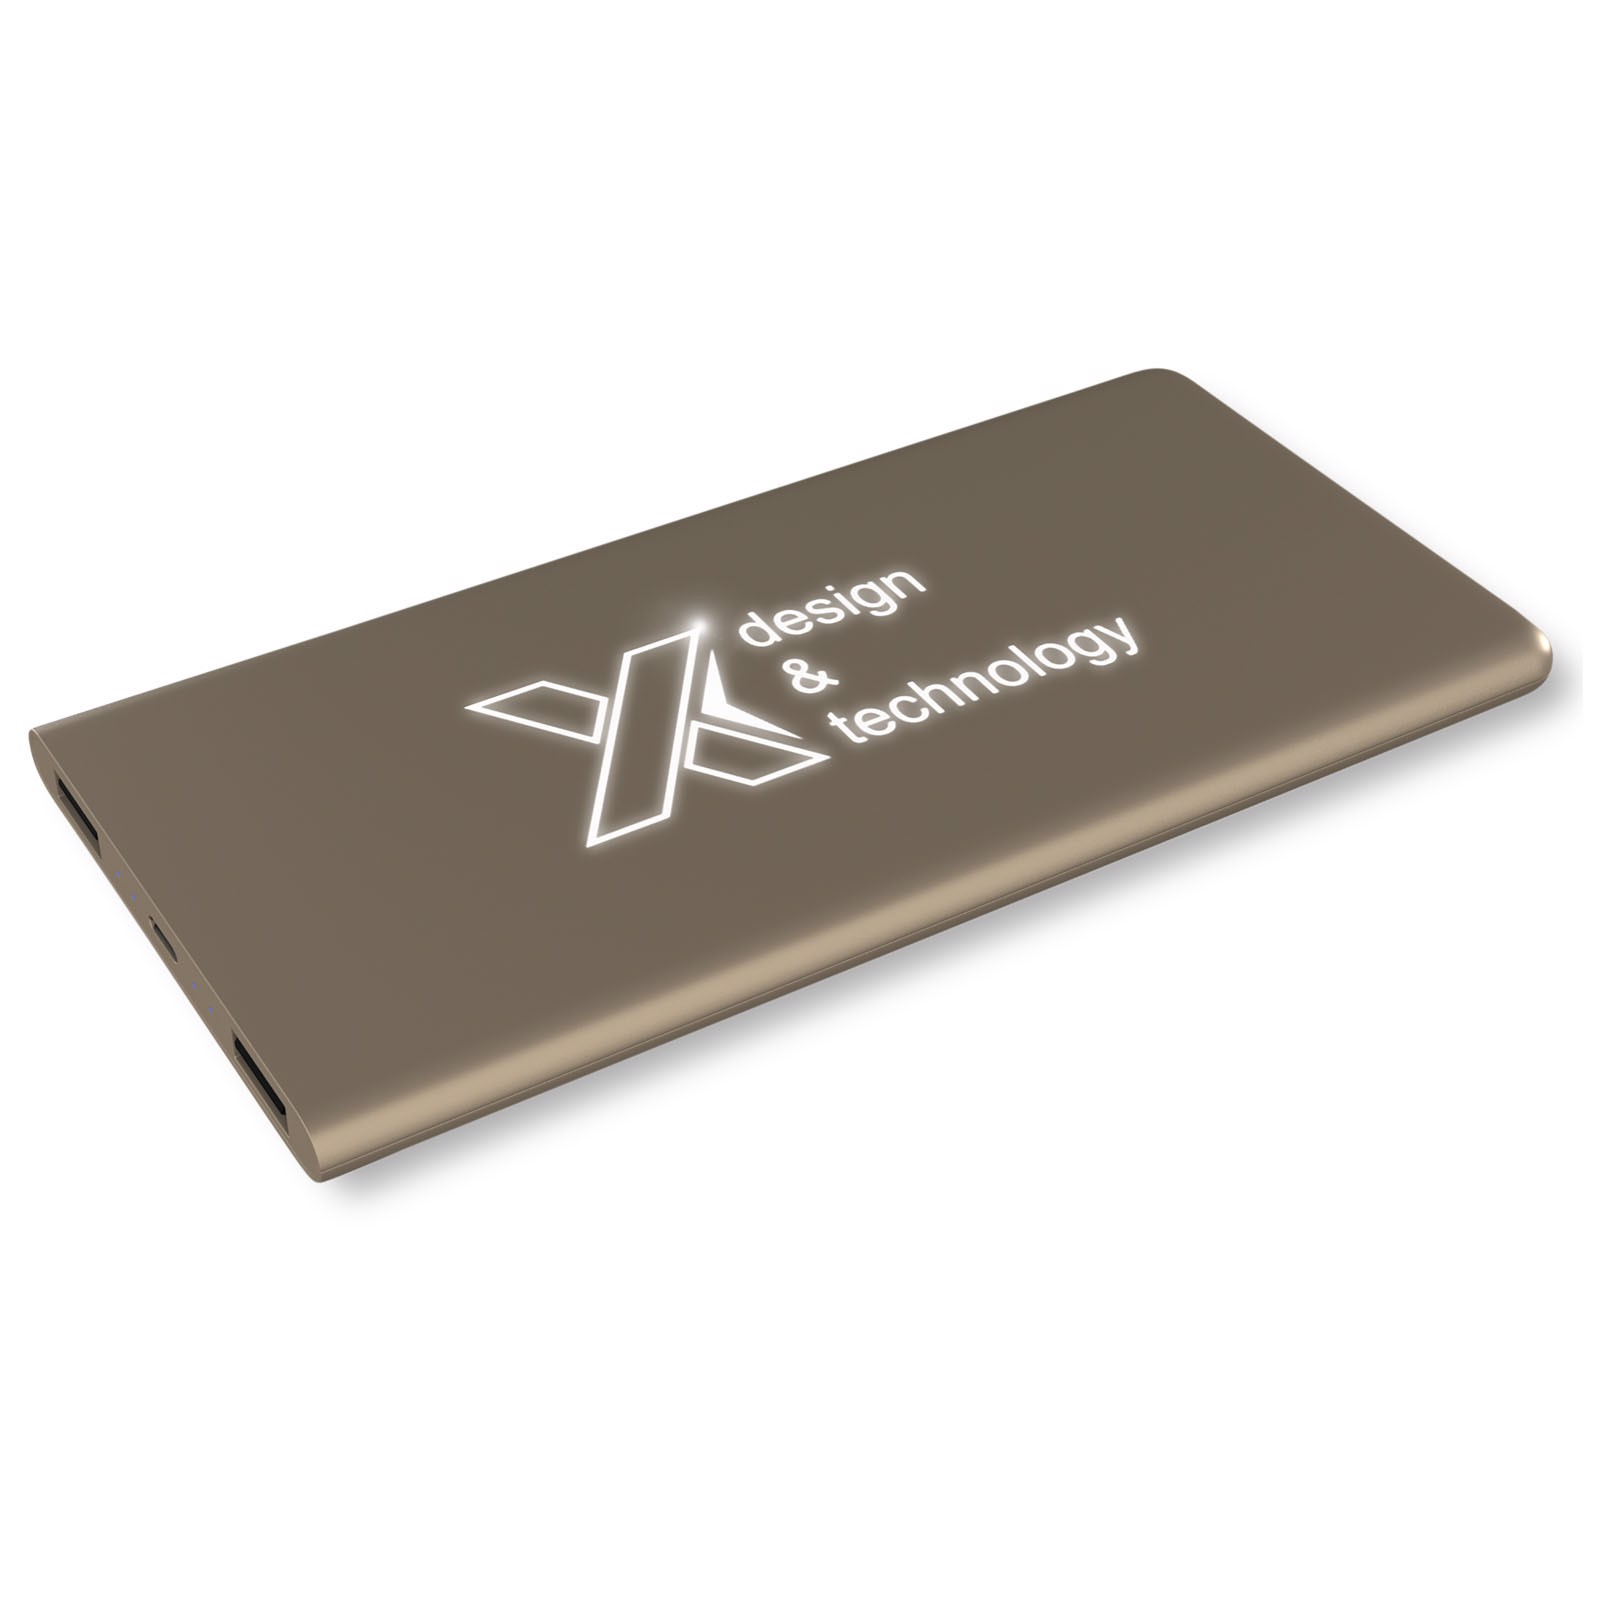 SCX.design P15 light-up 5000 mAh powerbank - Gold / Weiss